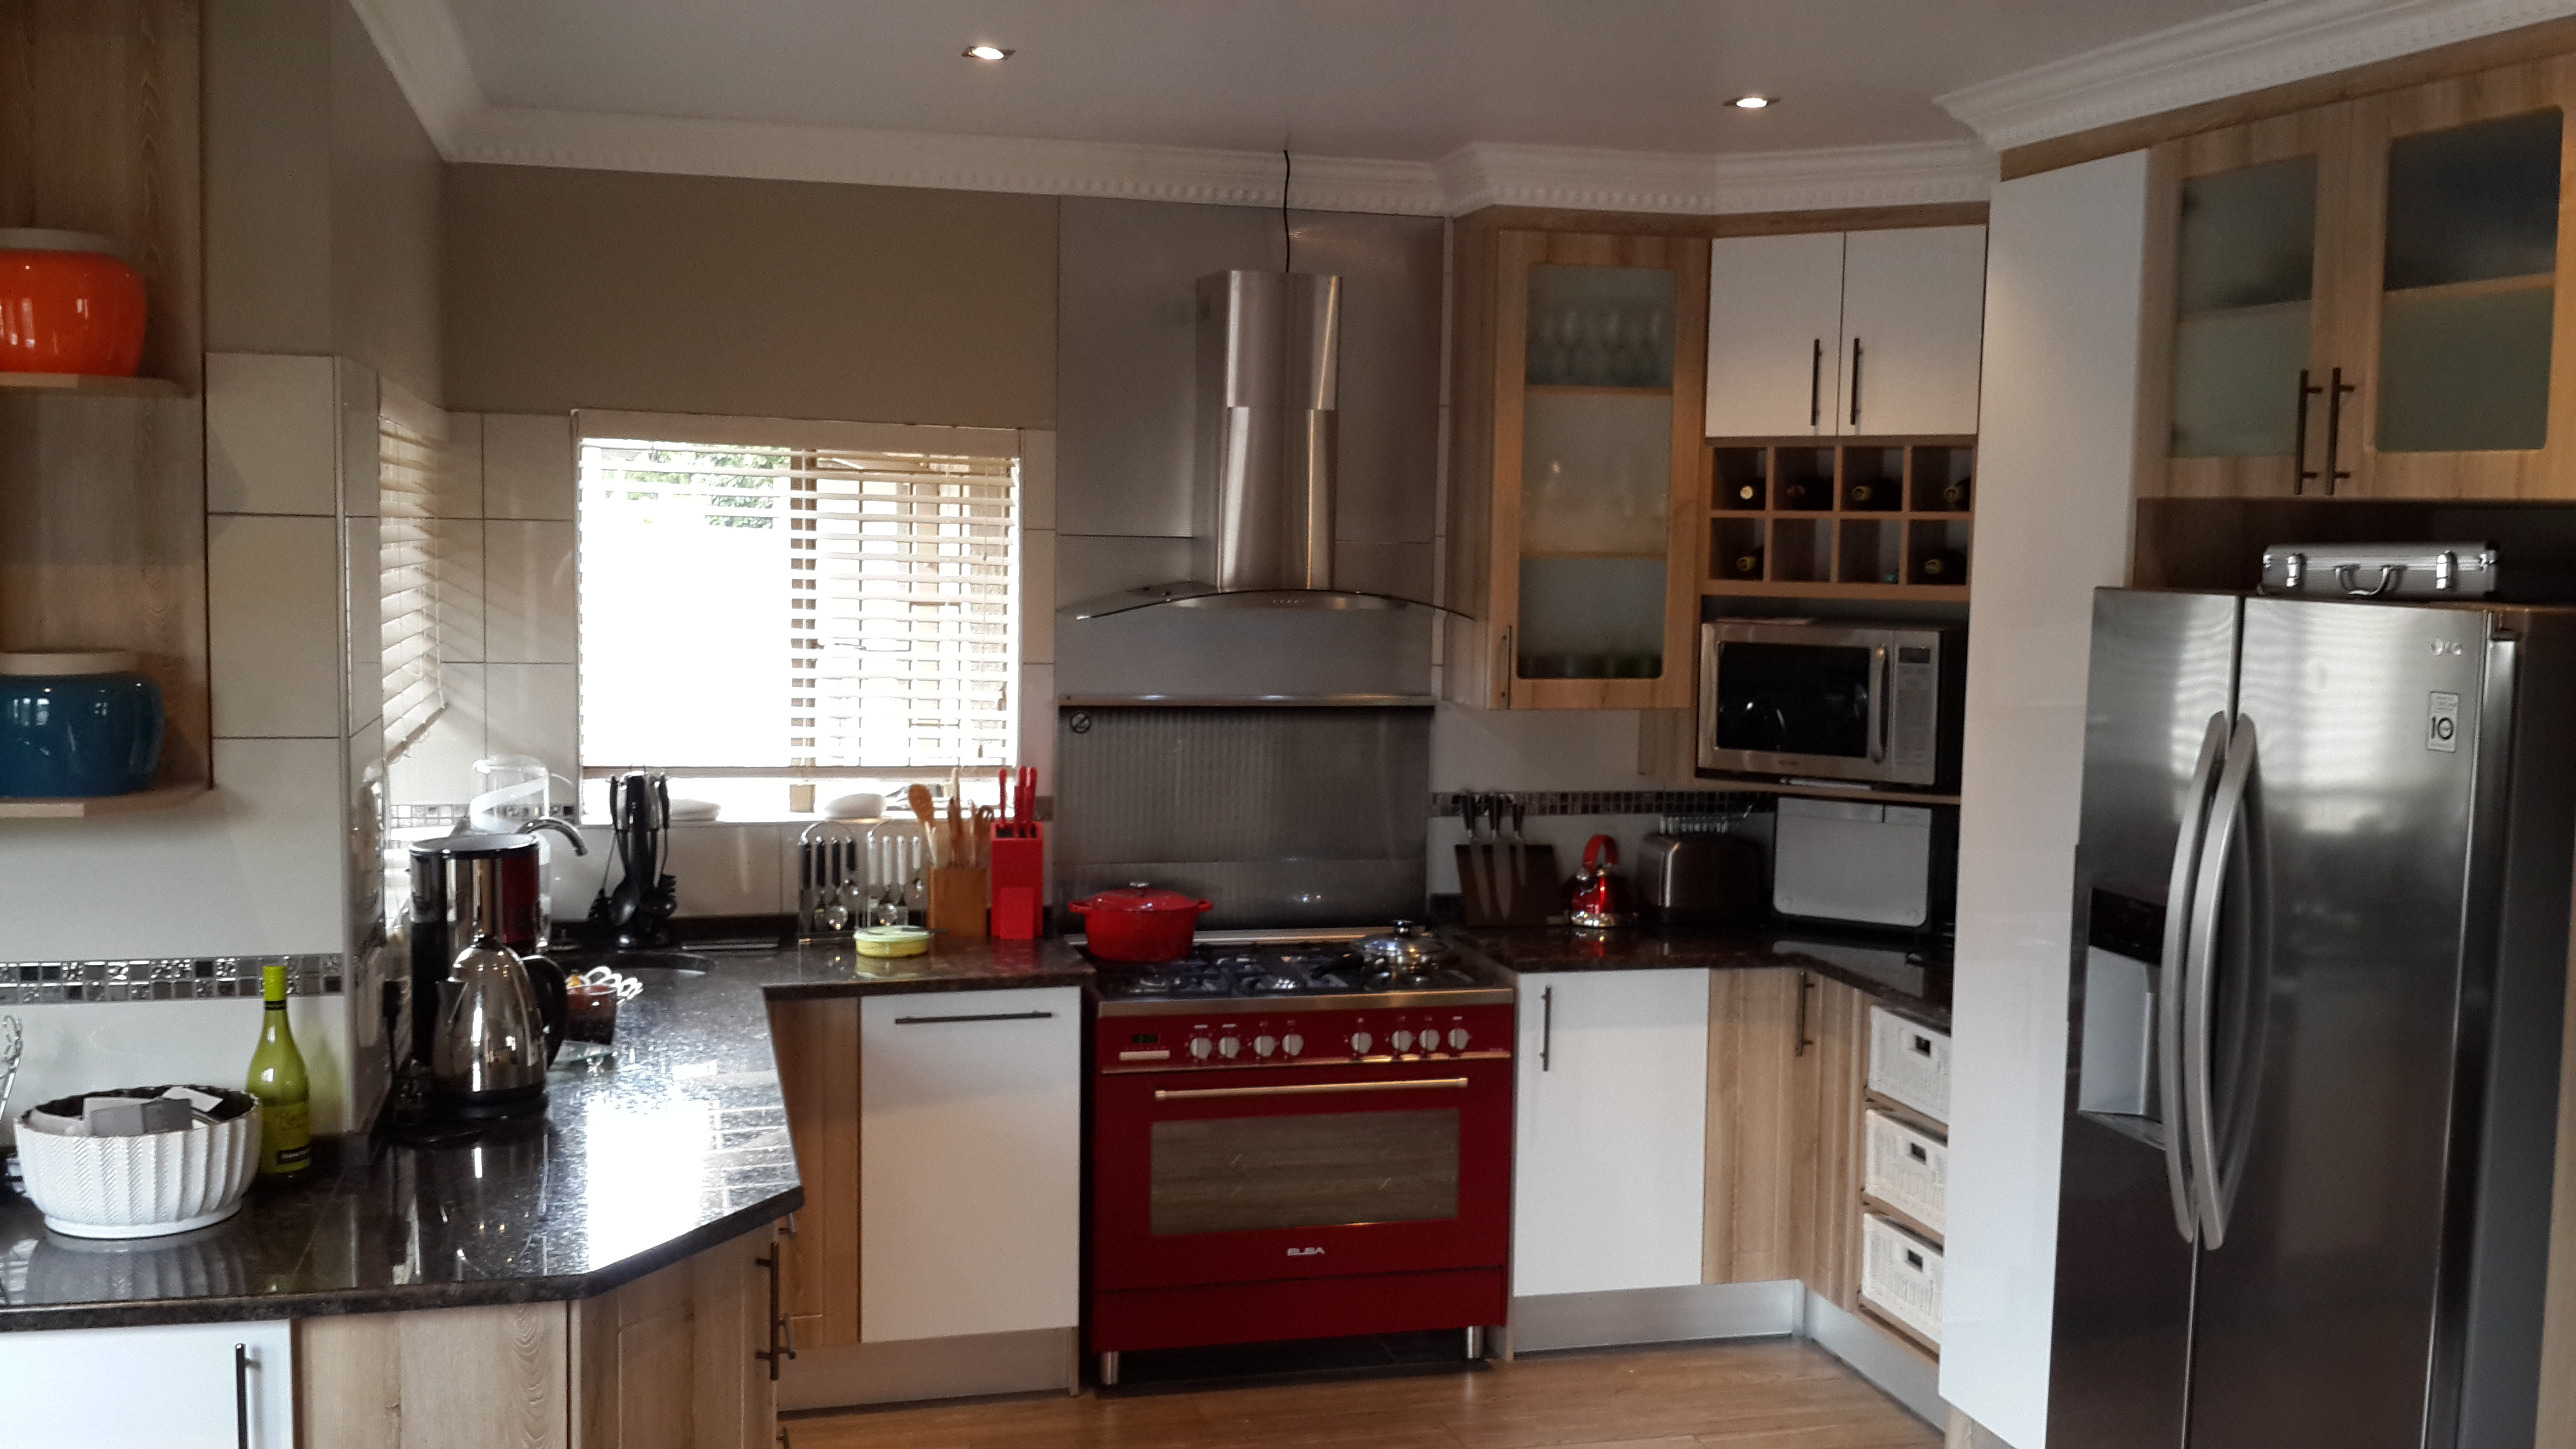 Kitchen cupboards klerksdorp north west south africa for Kitchen cupboards south africa